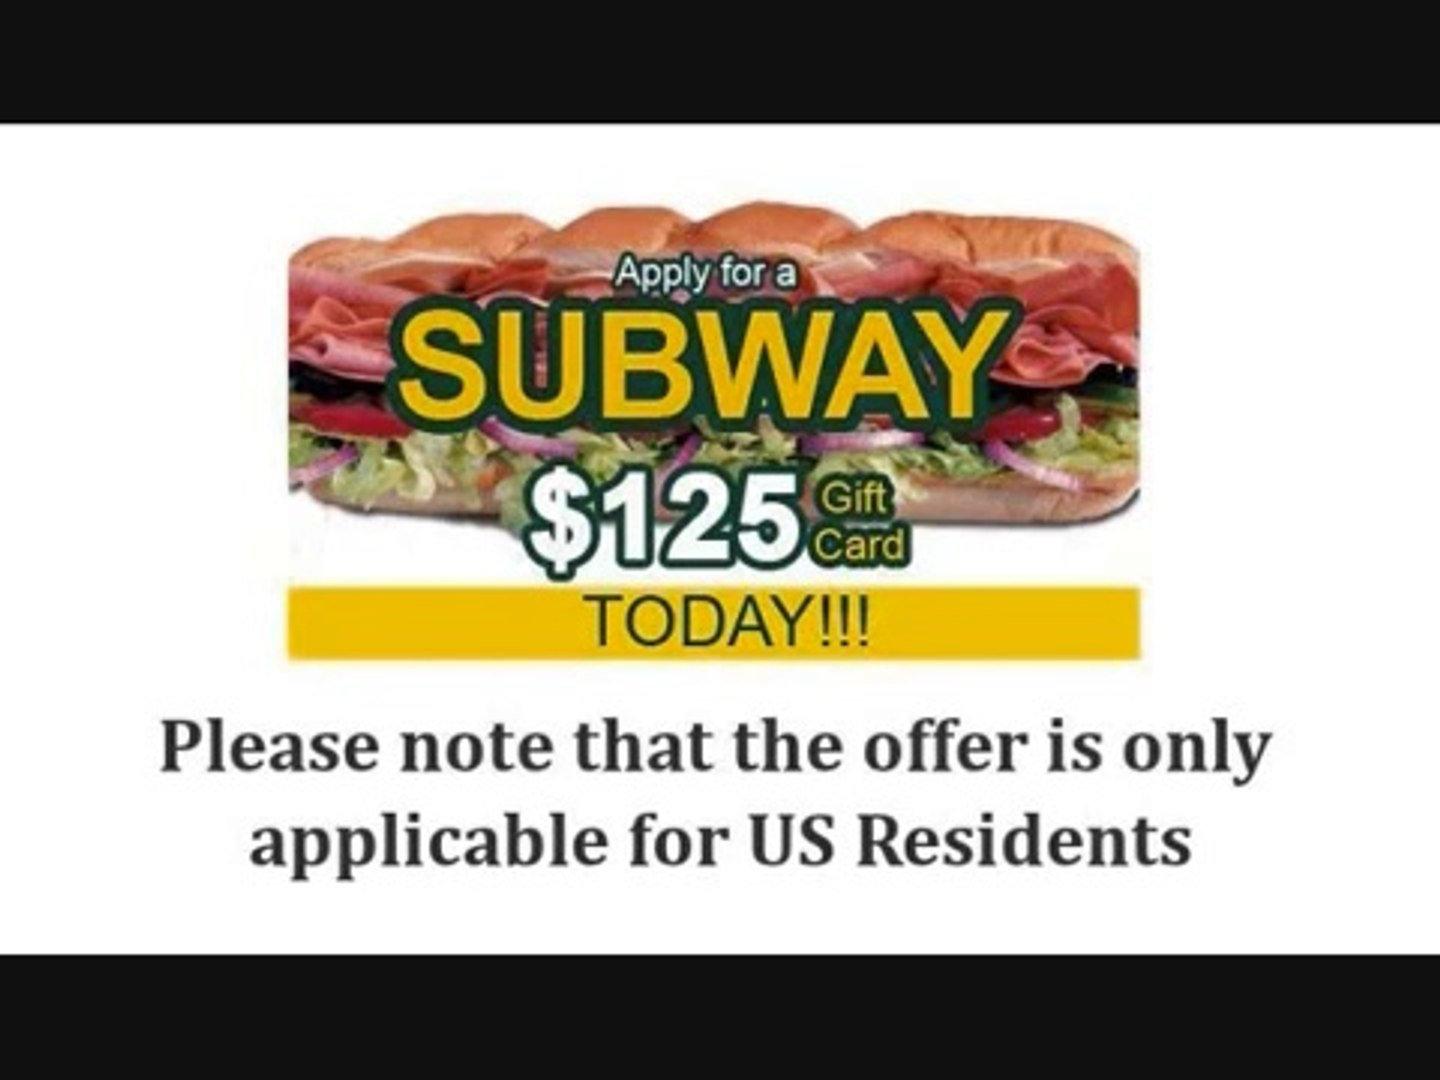 Subway Coupons 2014 VALID All Year - NEW Updated Free Printable Coupons & Mobile Coupons